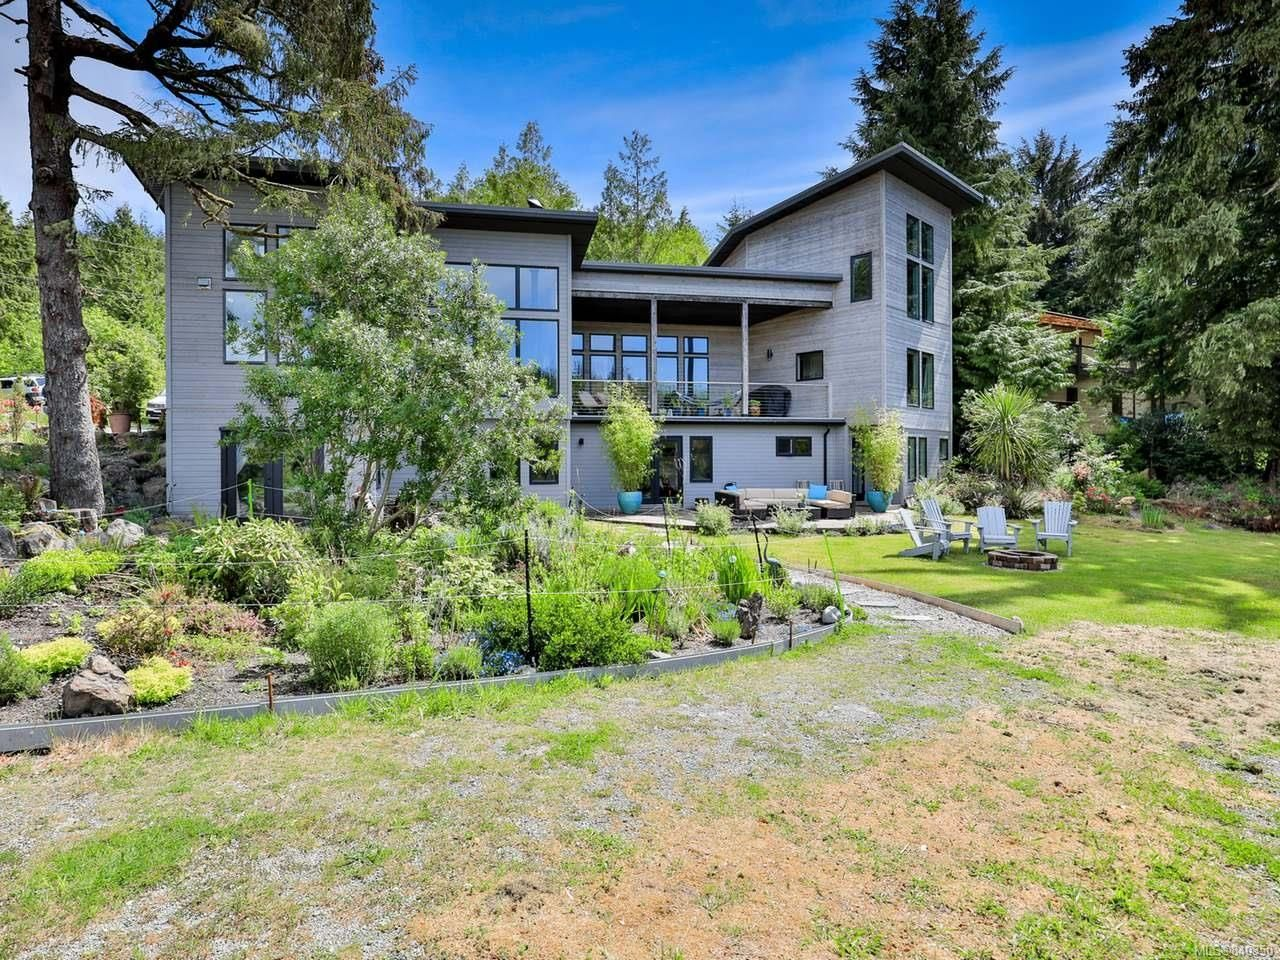 Photo 58: Photos: 1068 Helen Rd in UCLUELET: PA Ucluelet House for sale (Port Alberni)  : MLS®# 840350